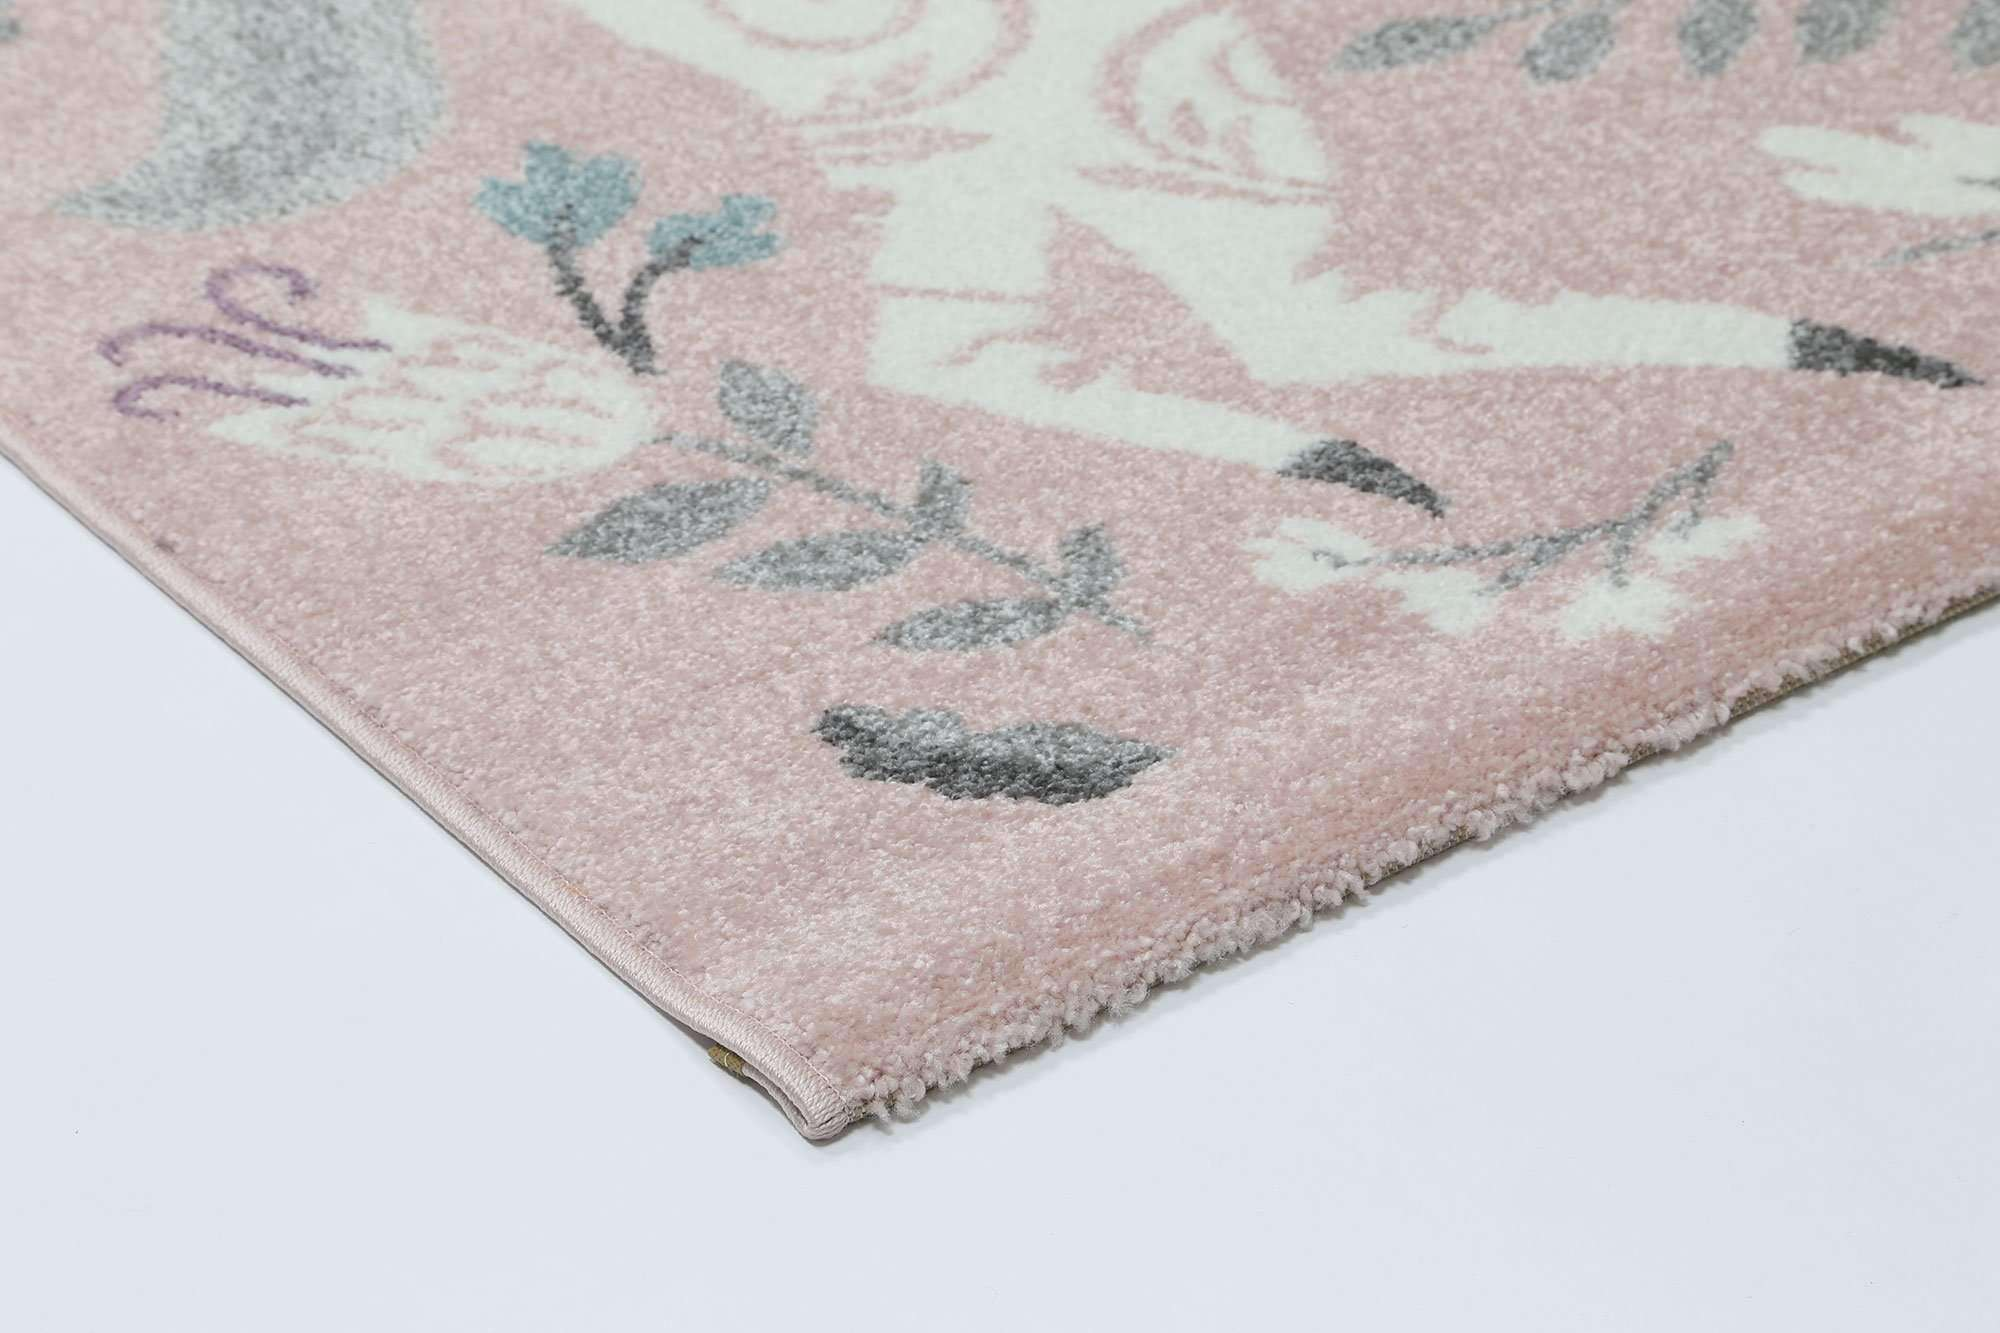 Poppins Kids Unicorn Rug Pink, [cheapest rugs online], [au rugs], [rugs australia]